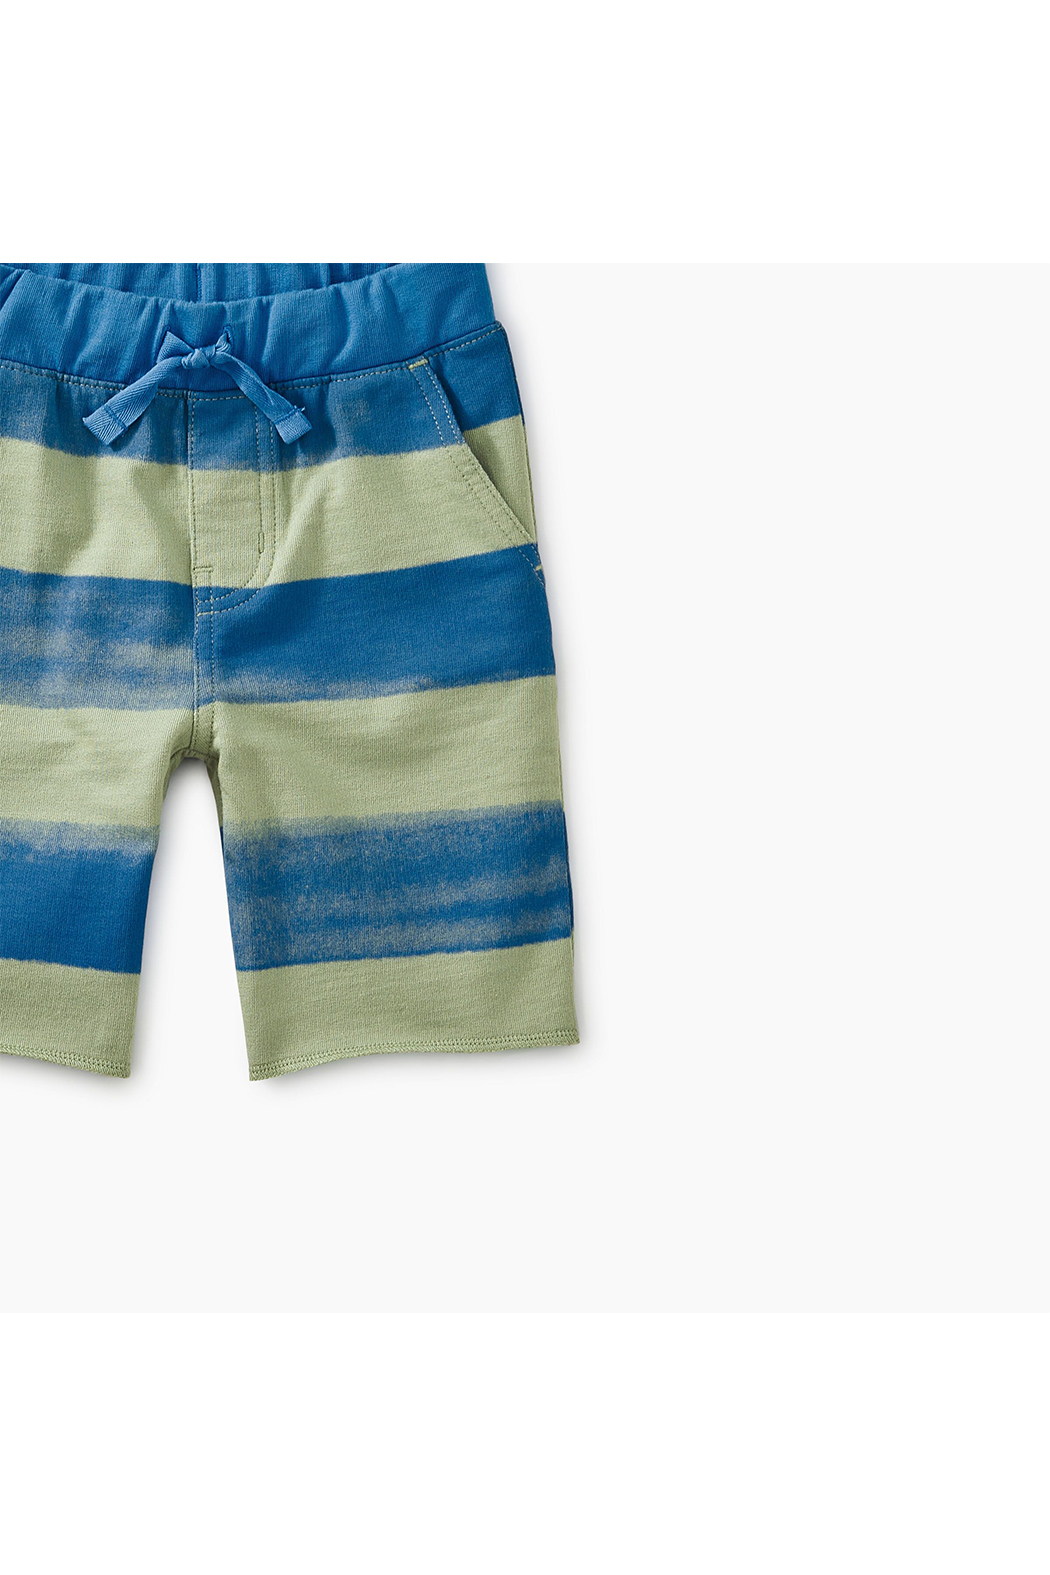 Tea Collection Patterned Crusier Baby Shorts - Front Full Image